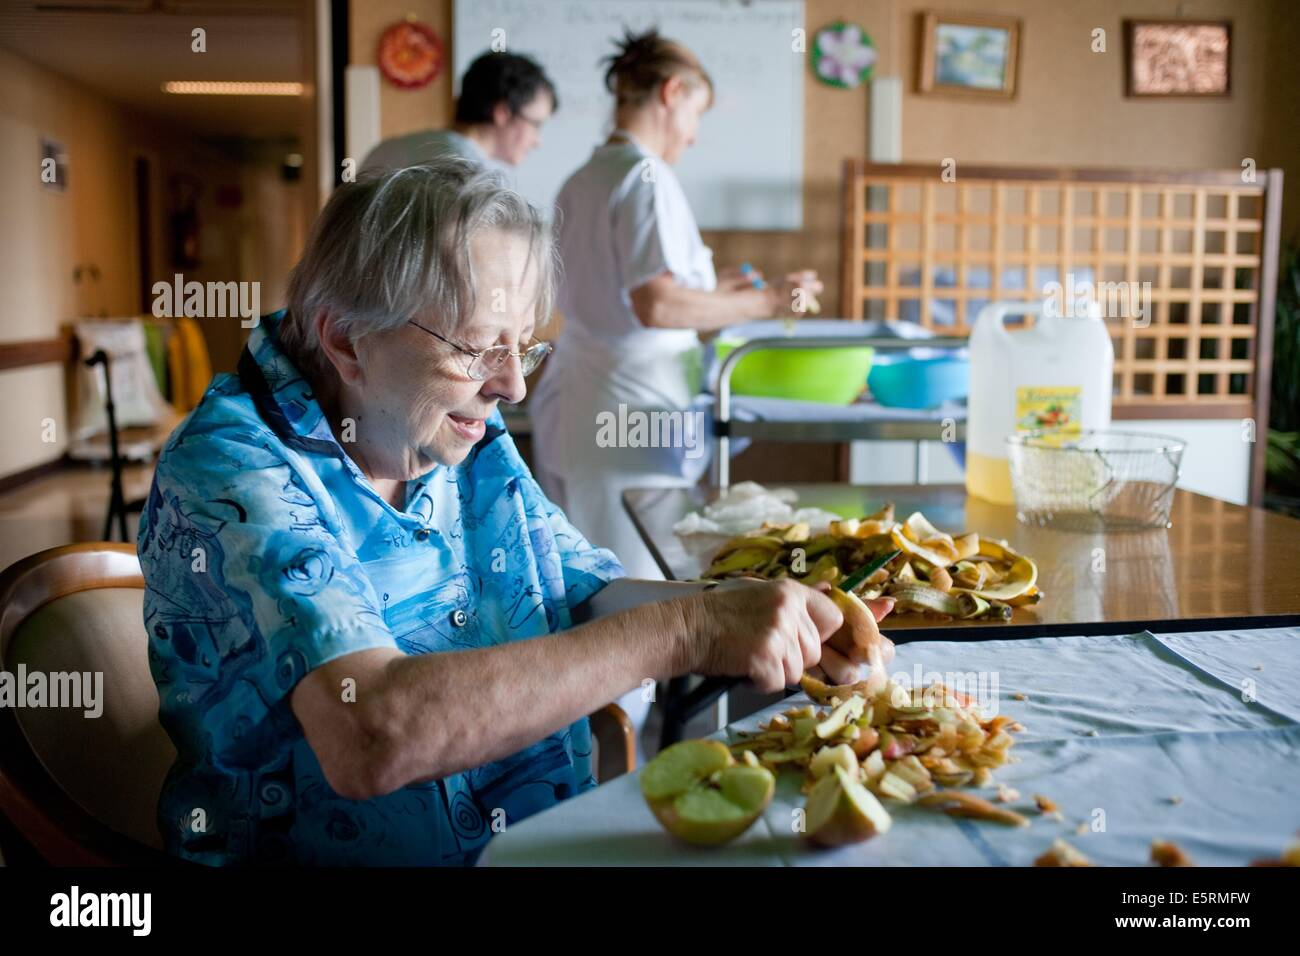 Cooking workshop. Residential home for dependent elderly person, Limoges, France. - Stock Image